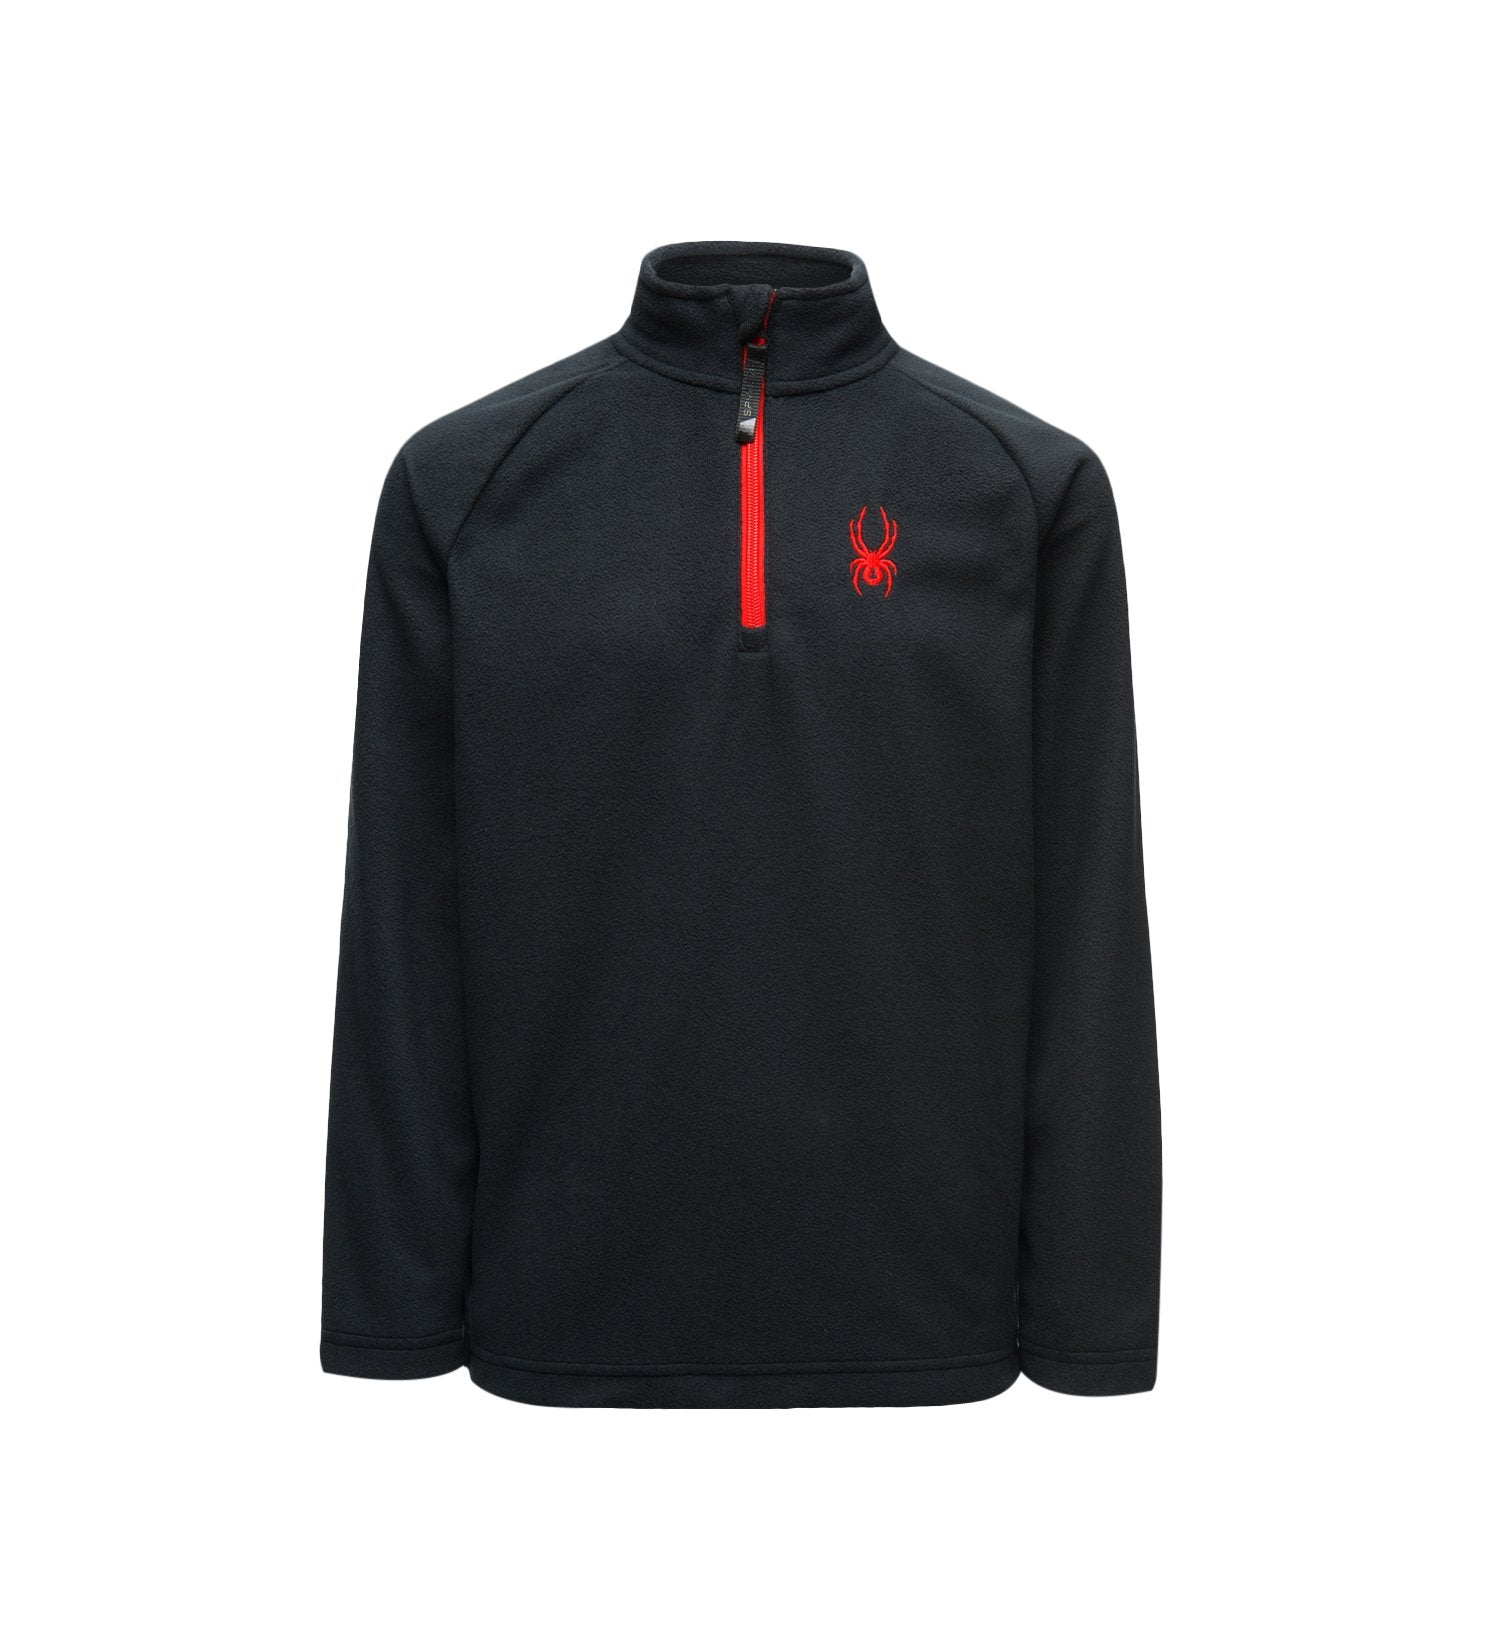 Spyder Speed Boys Fleece Top 2020